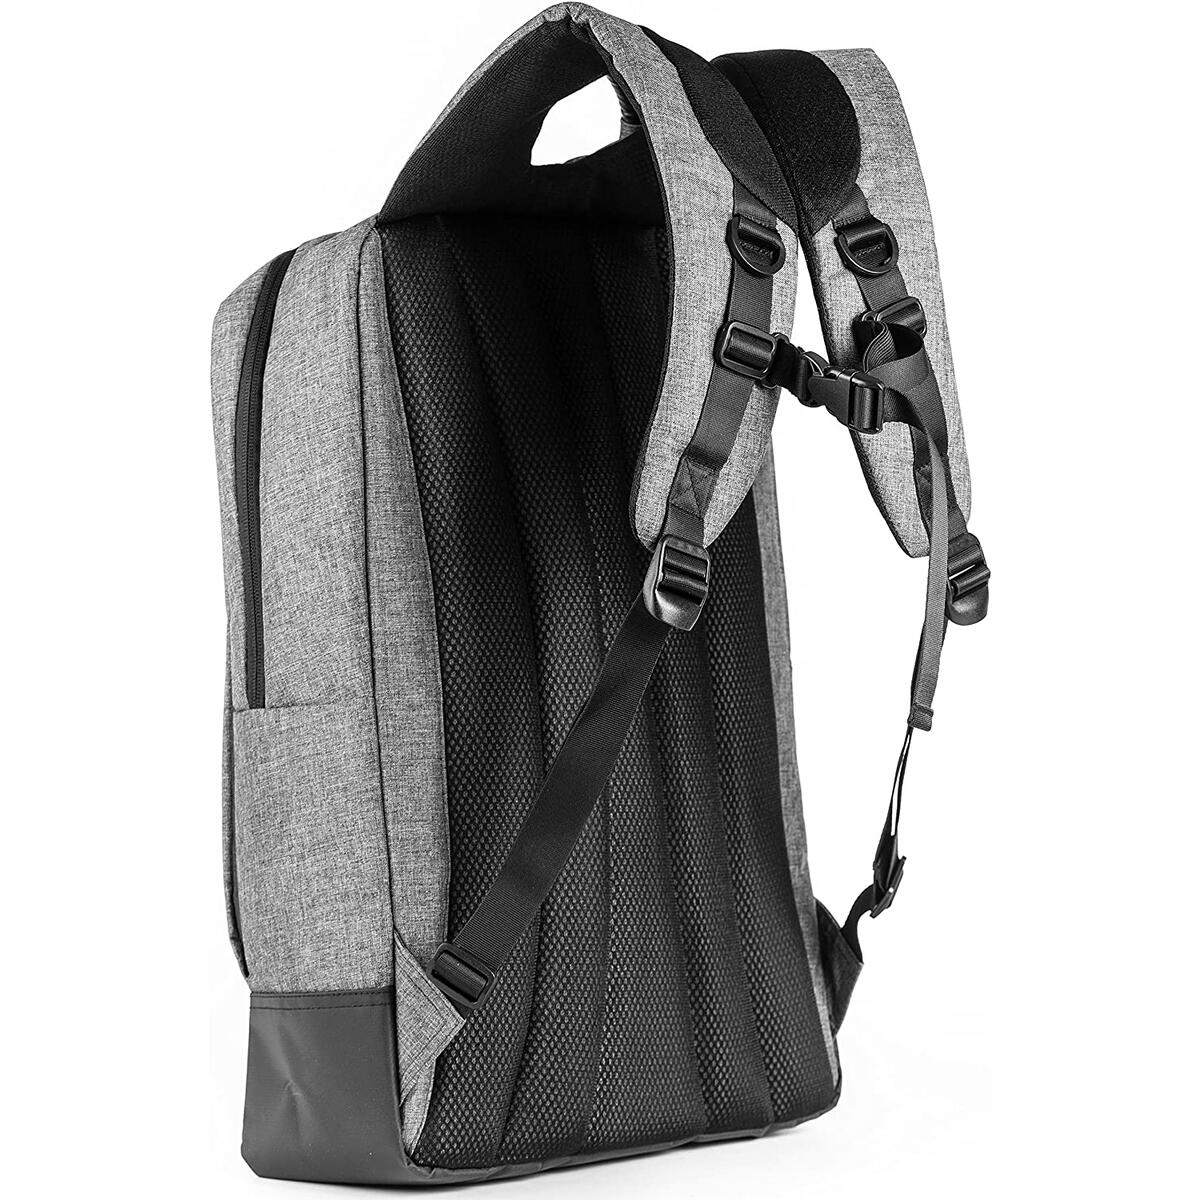 Travel Laptop Backpack for Up to 15 Inch Laptops - Protective Water Resistant Padded Bag for School, Work, Business, Hiking, Top Quality and Super Durable Computer Case for Men and Women